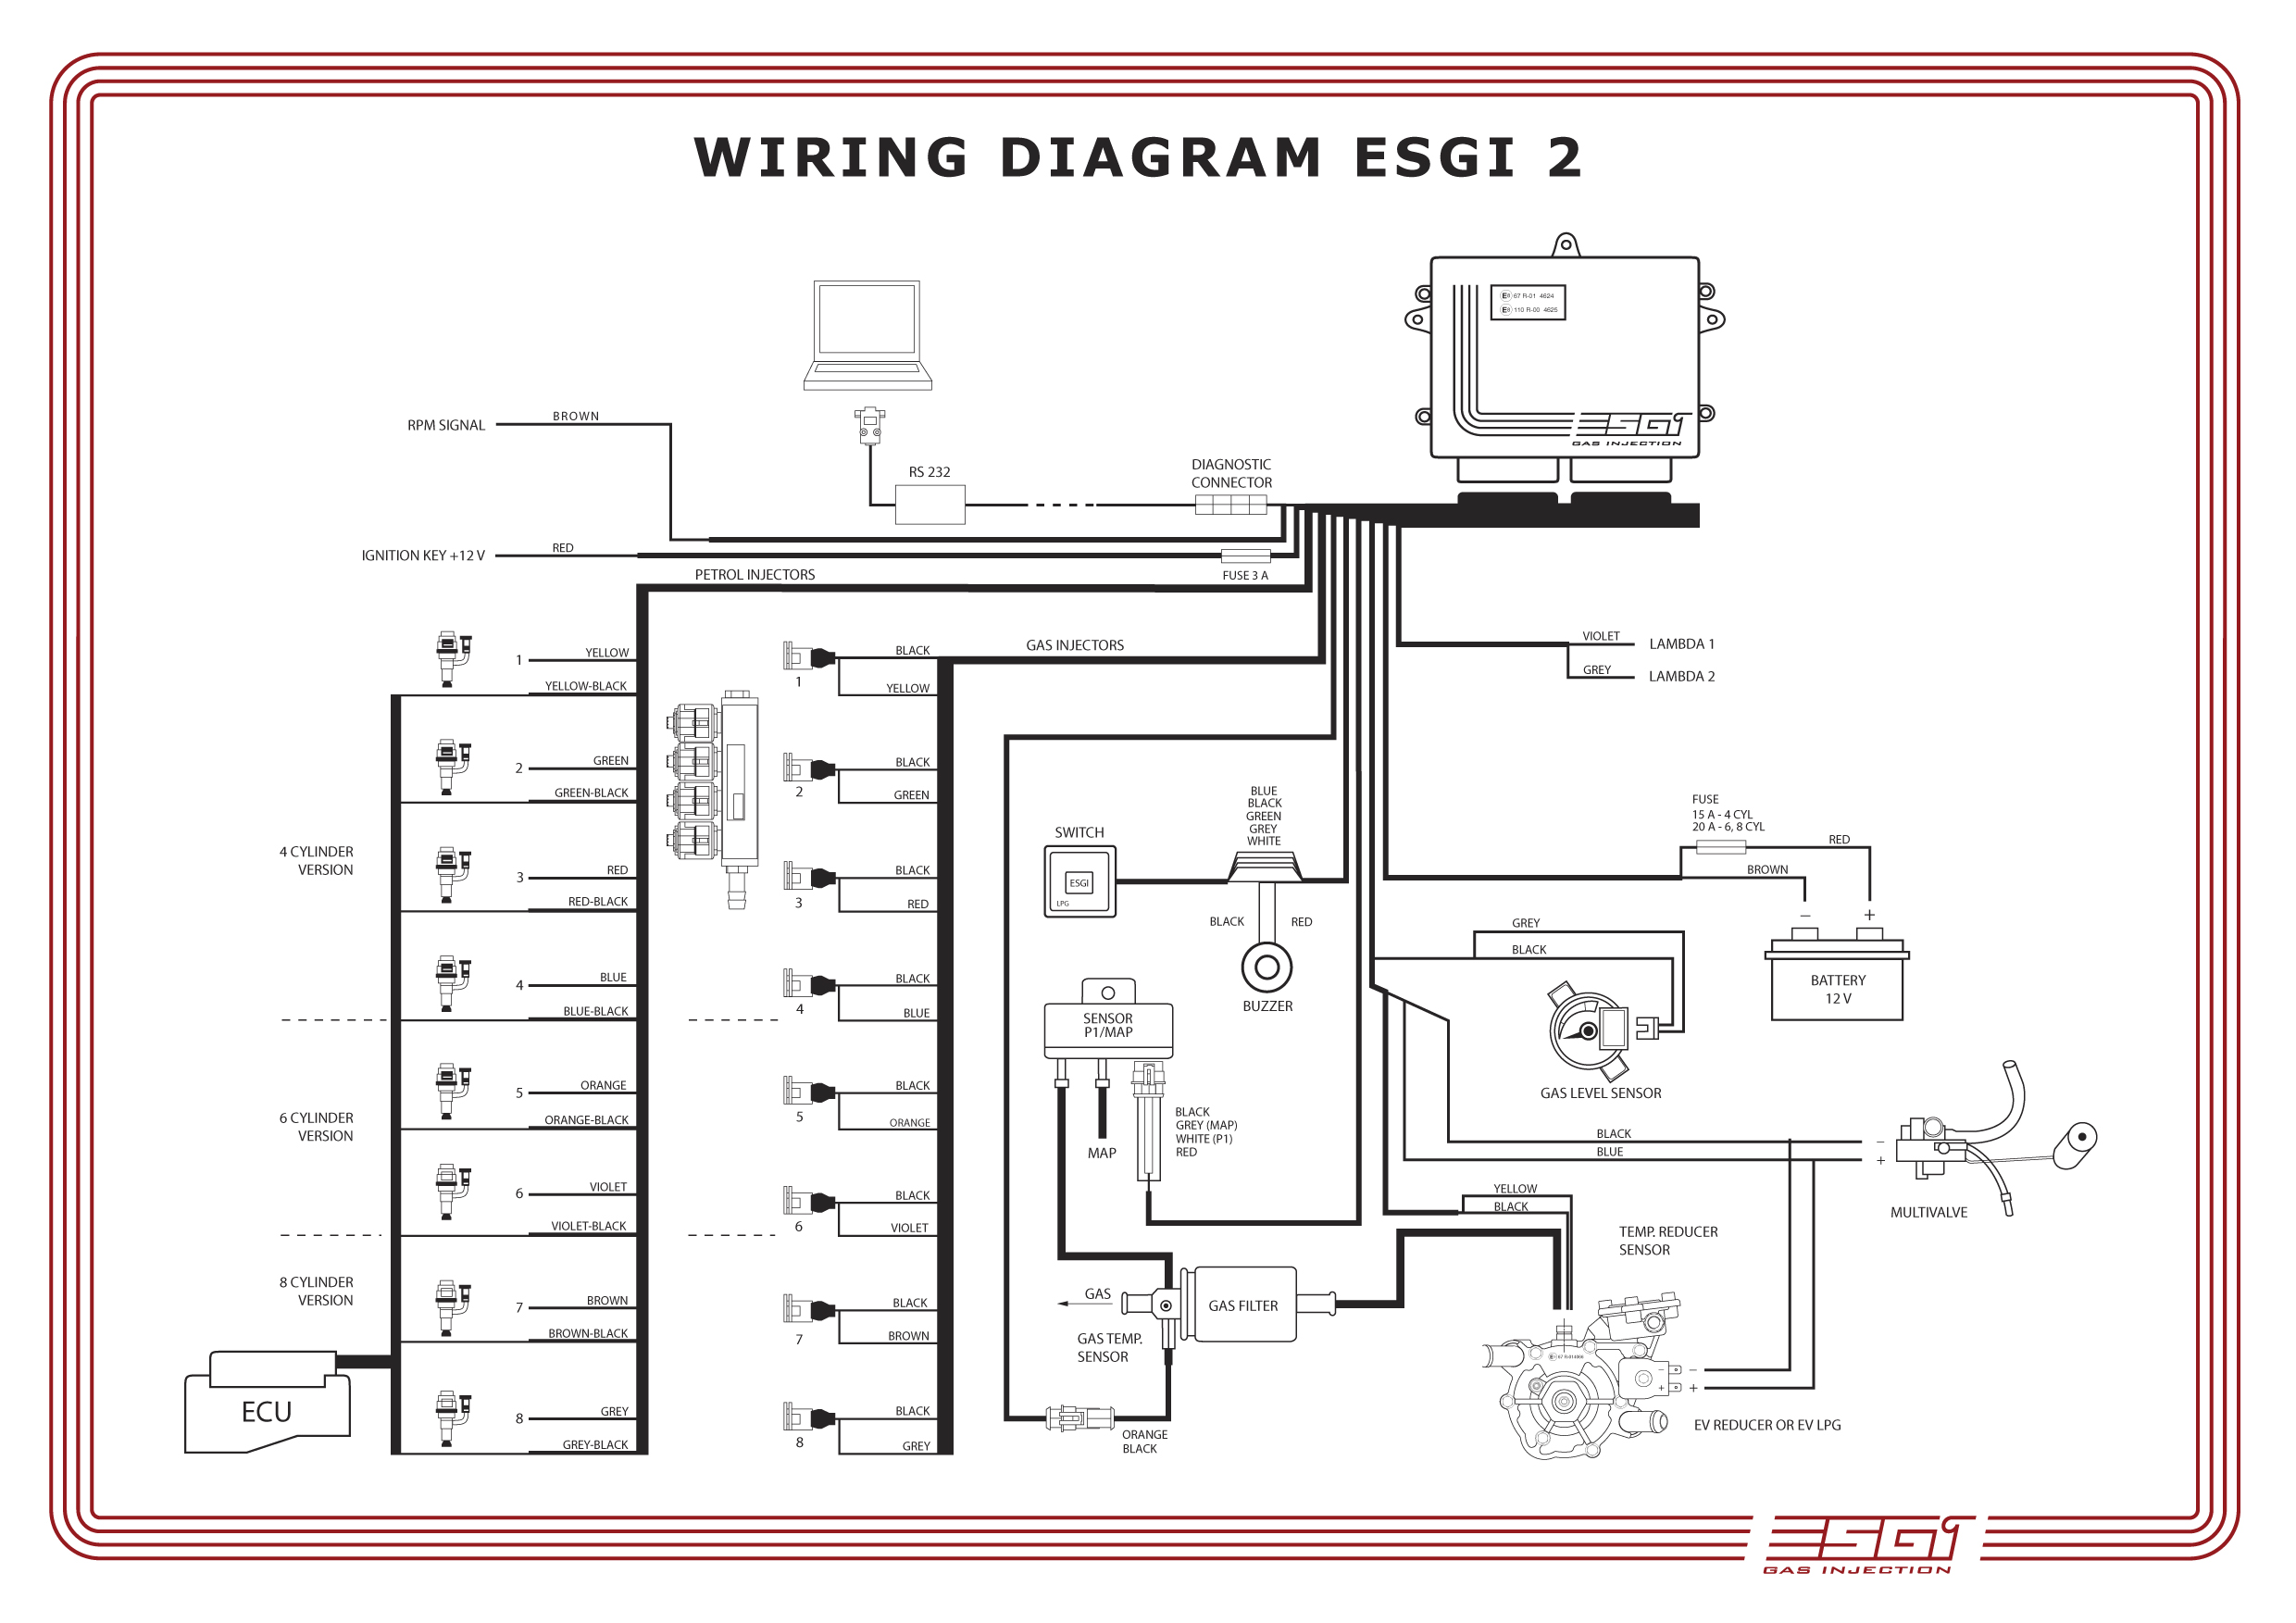 8669907000_1434397485 aeb lpg wiring diagram wiring diagram and schematic design aeb lpg wiring diagram at gsmx.co